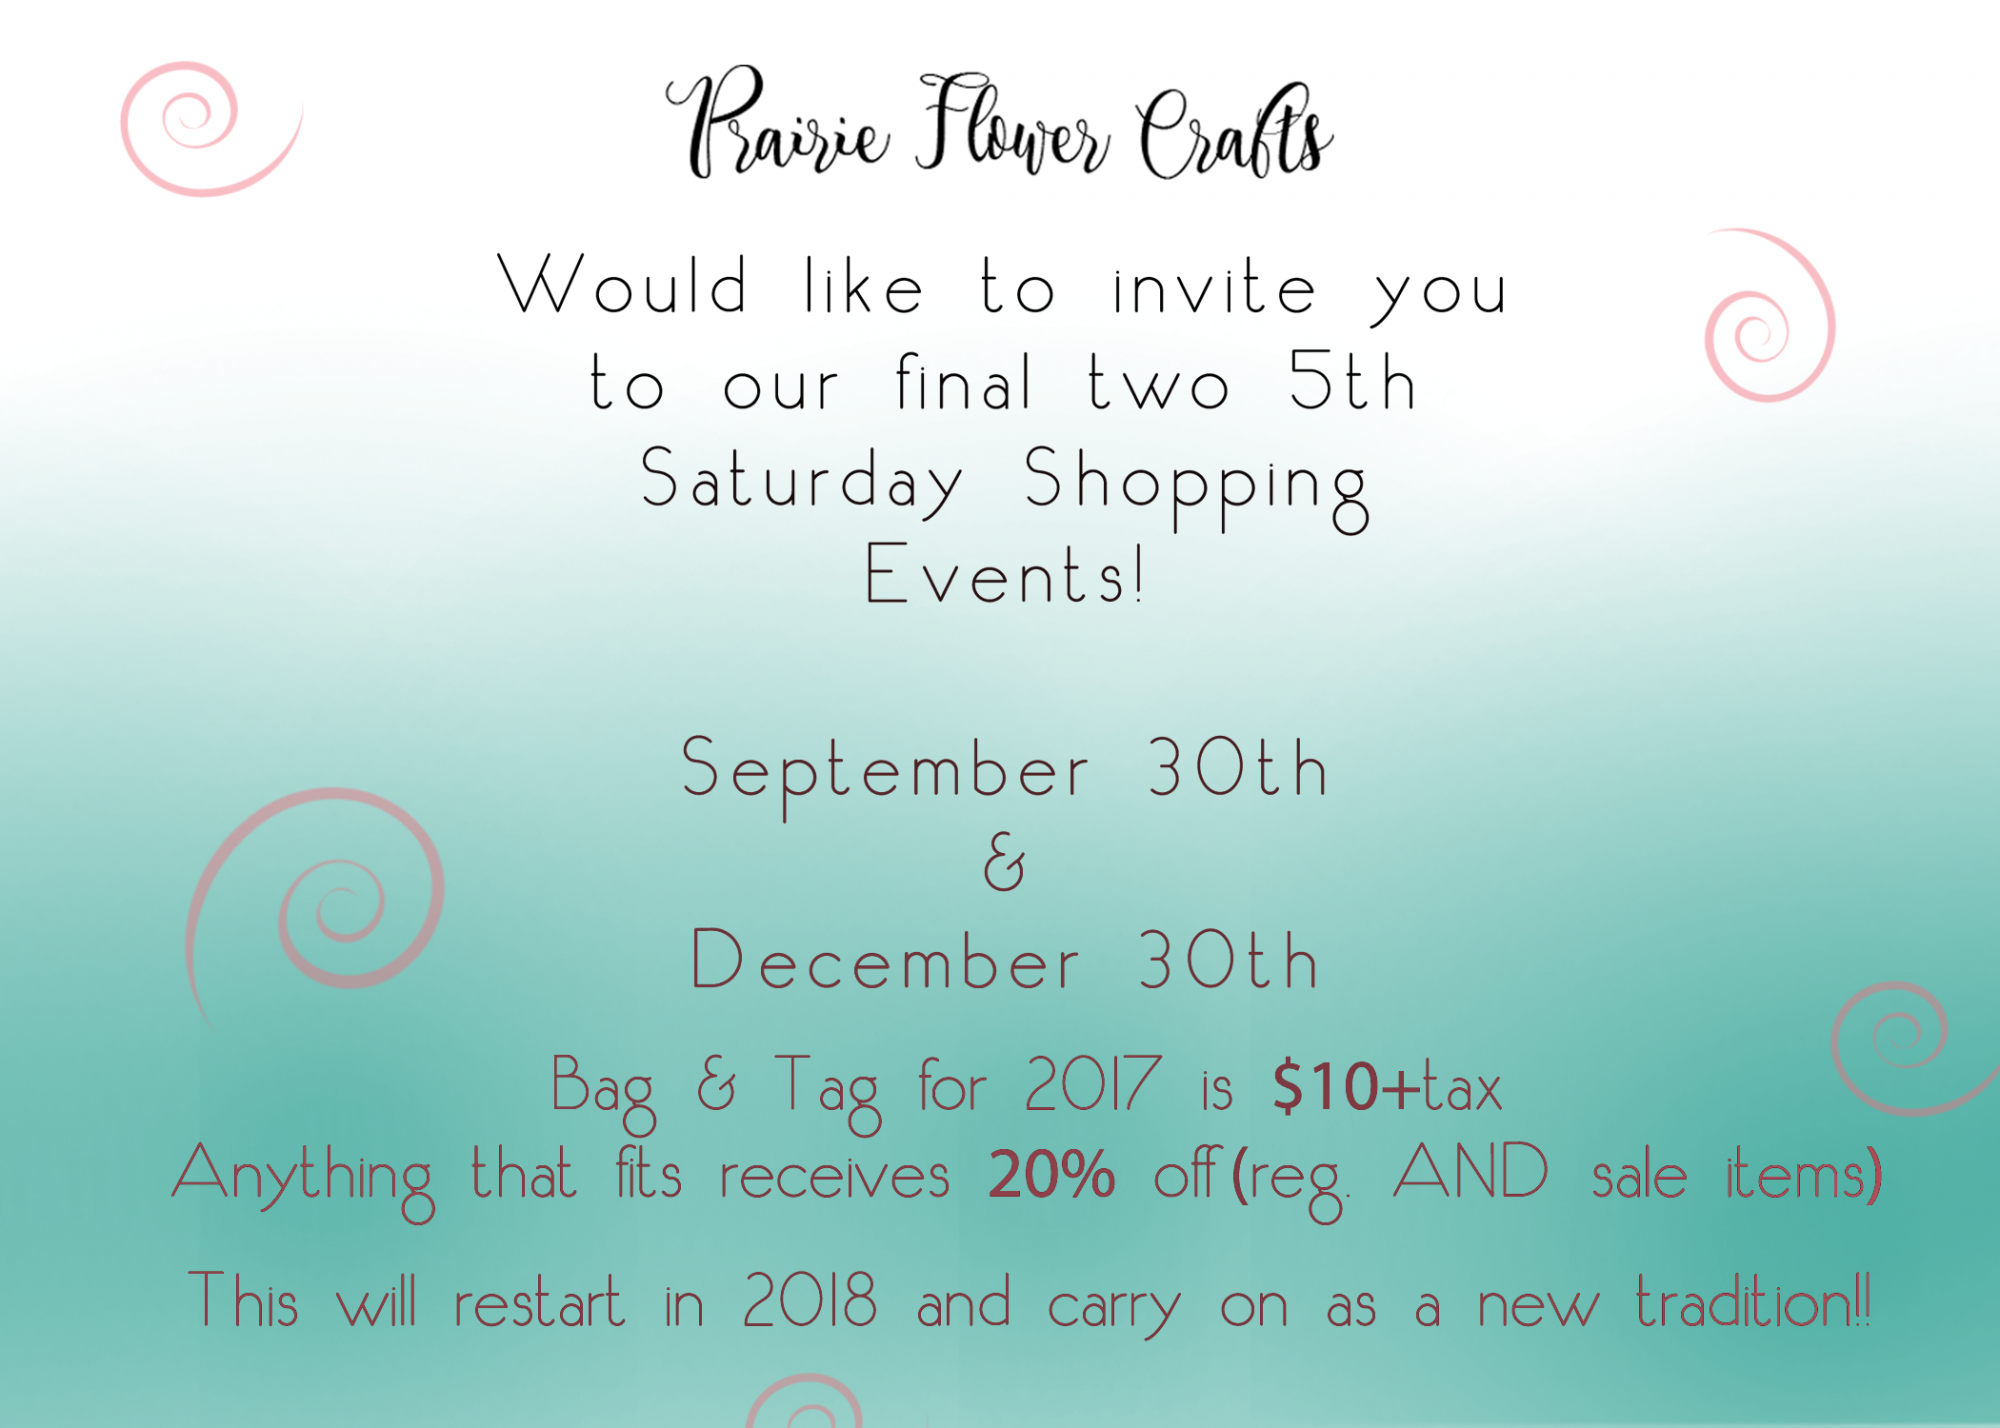 5th Saturdays Save 20% Sept 30th and Dec 30th